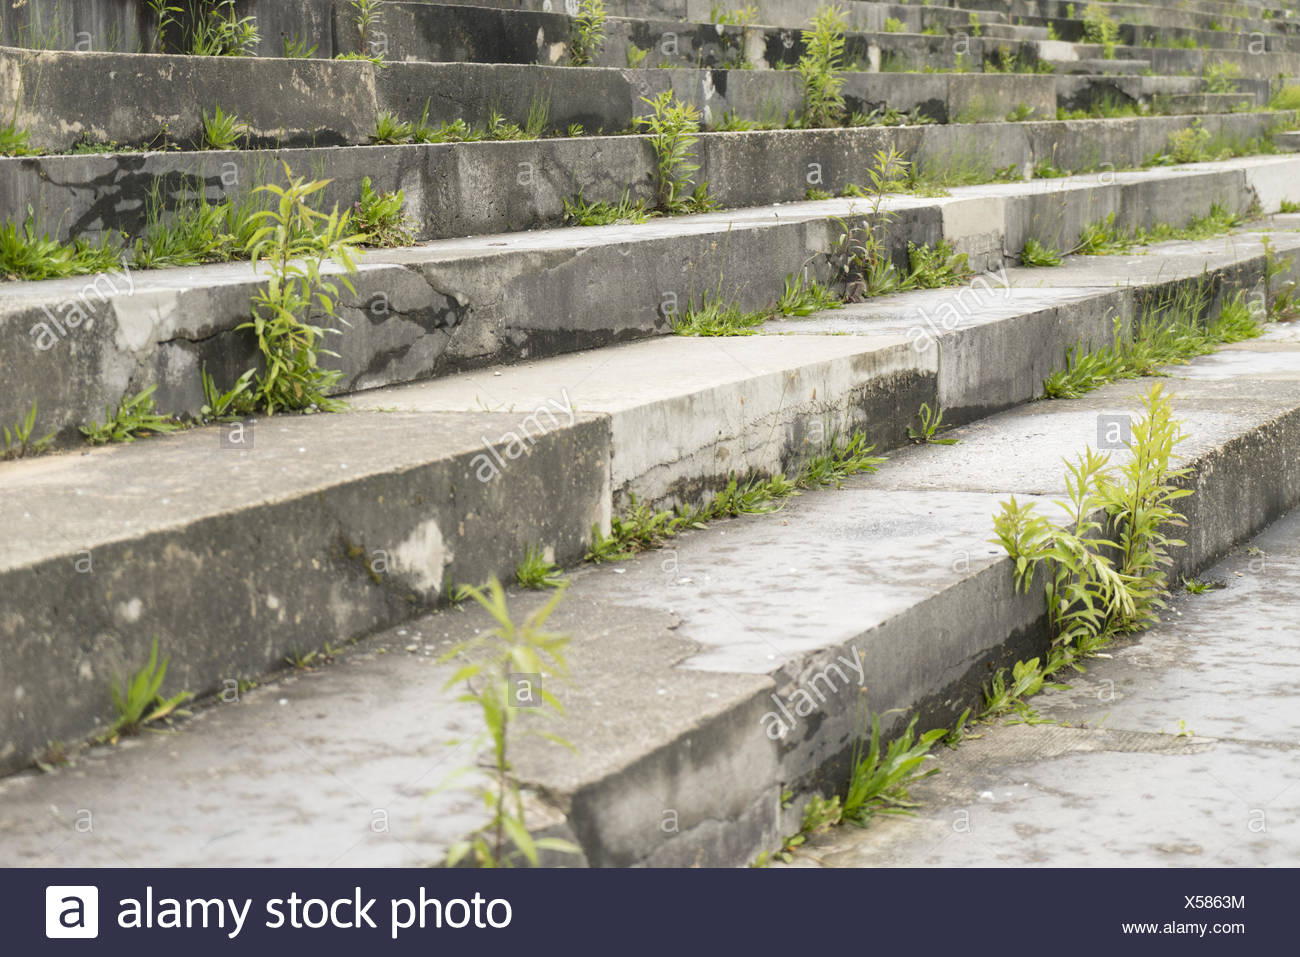 Third Reich Party Rally Grounds - Stock Image